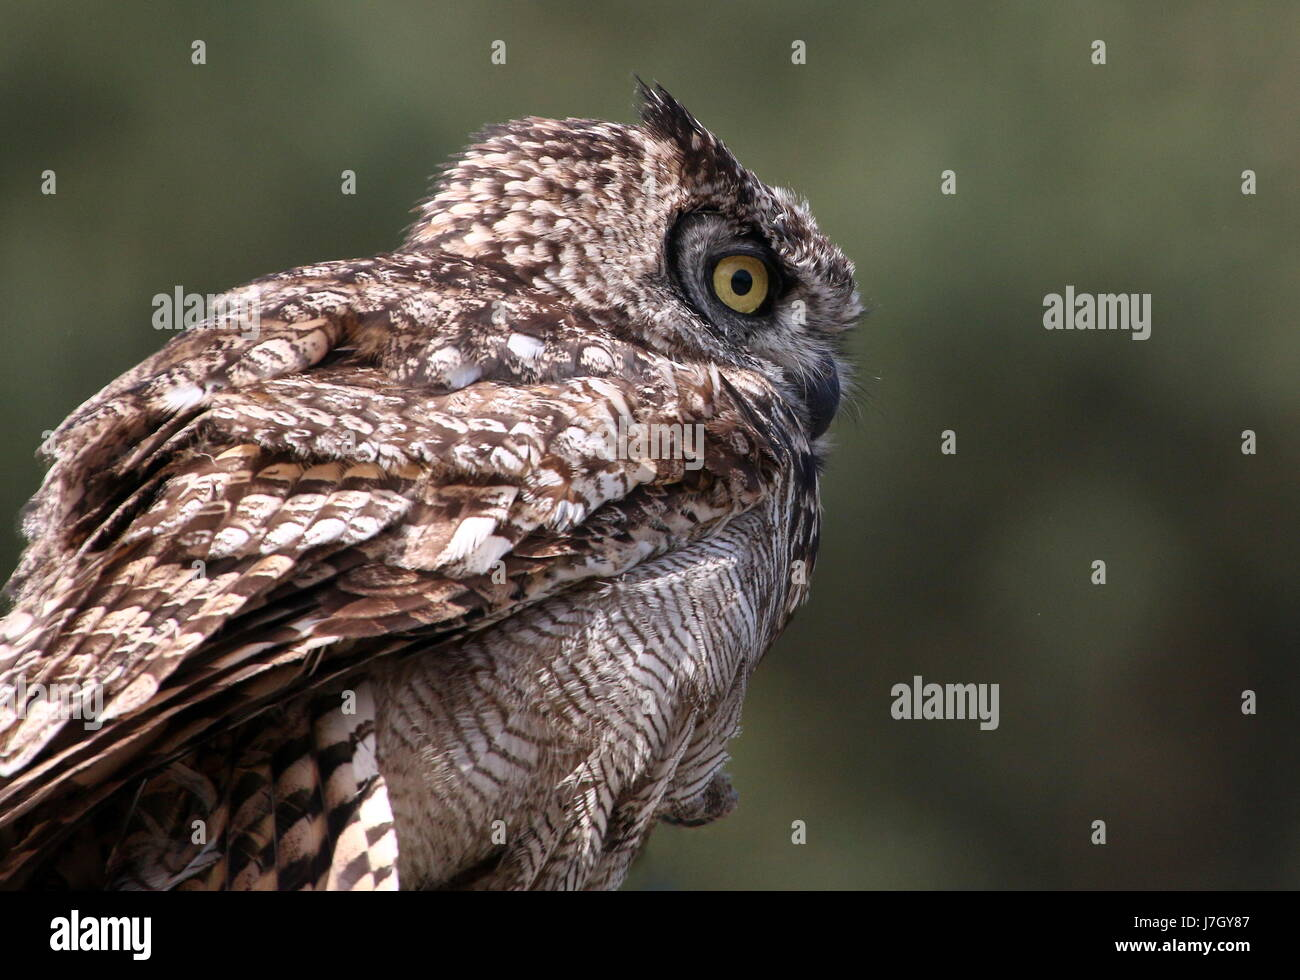 African Spotted Eagle Owl (Bubo africanus), upper body, seen in profile. Stock Photo